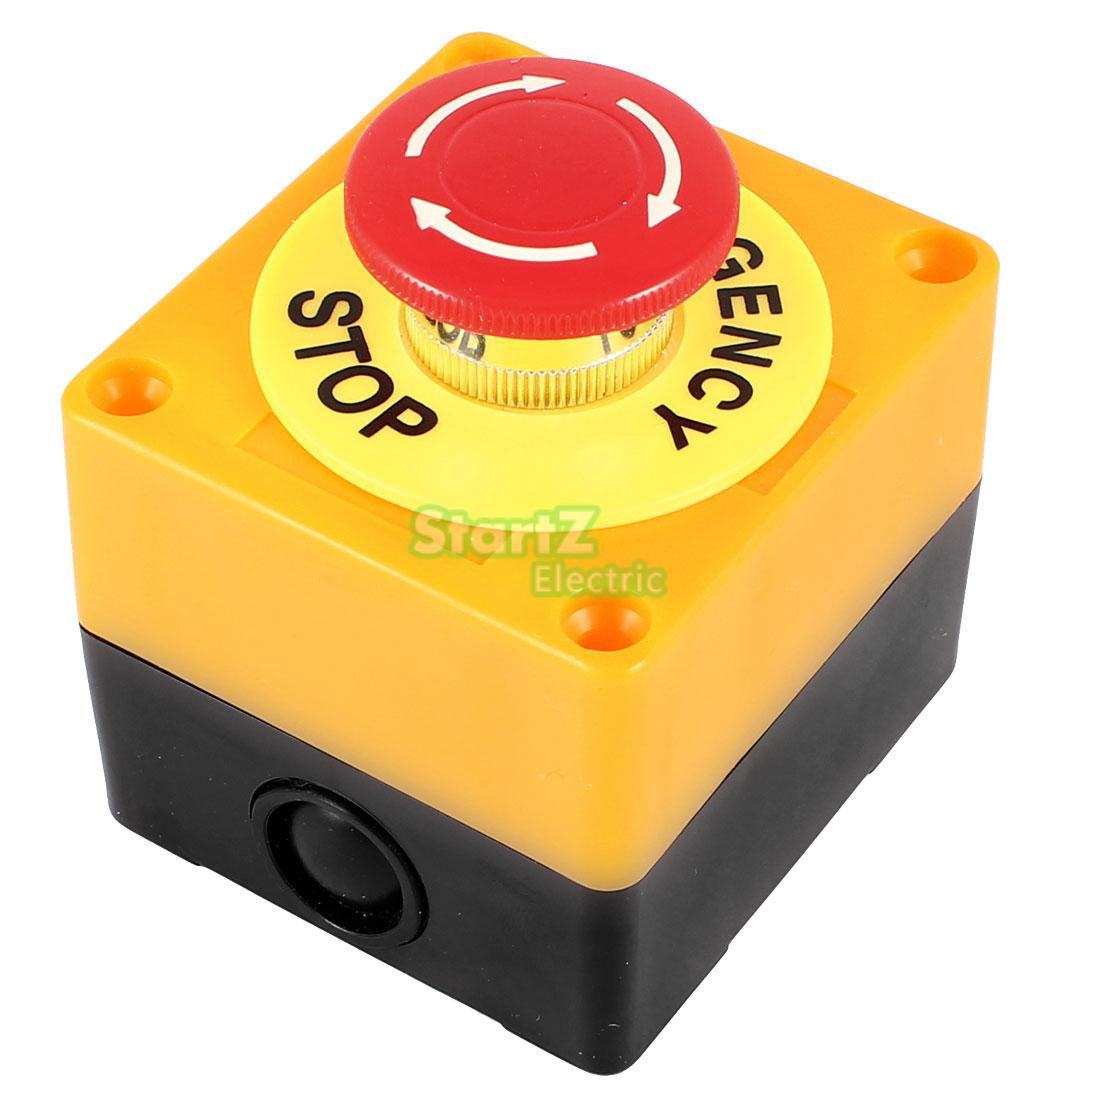 AC 660V 10A Plastic Shell Red Sign Emergency Stop Mushroom Push Button Switch 19mm metal waterproof aluminum push button switch mushroom emergency stop button press button 19mgjt stop l s kb